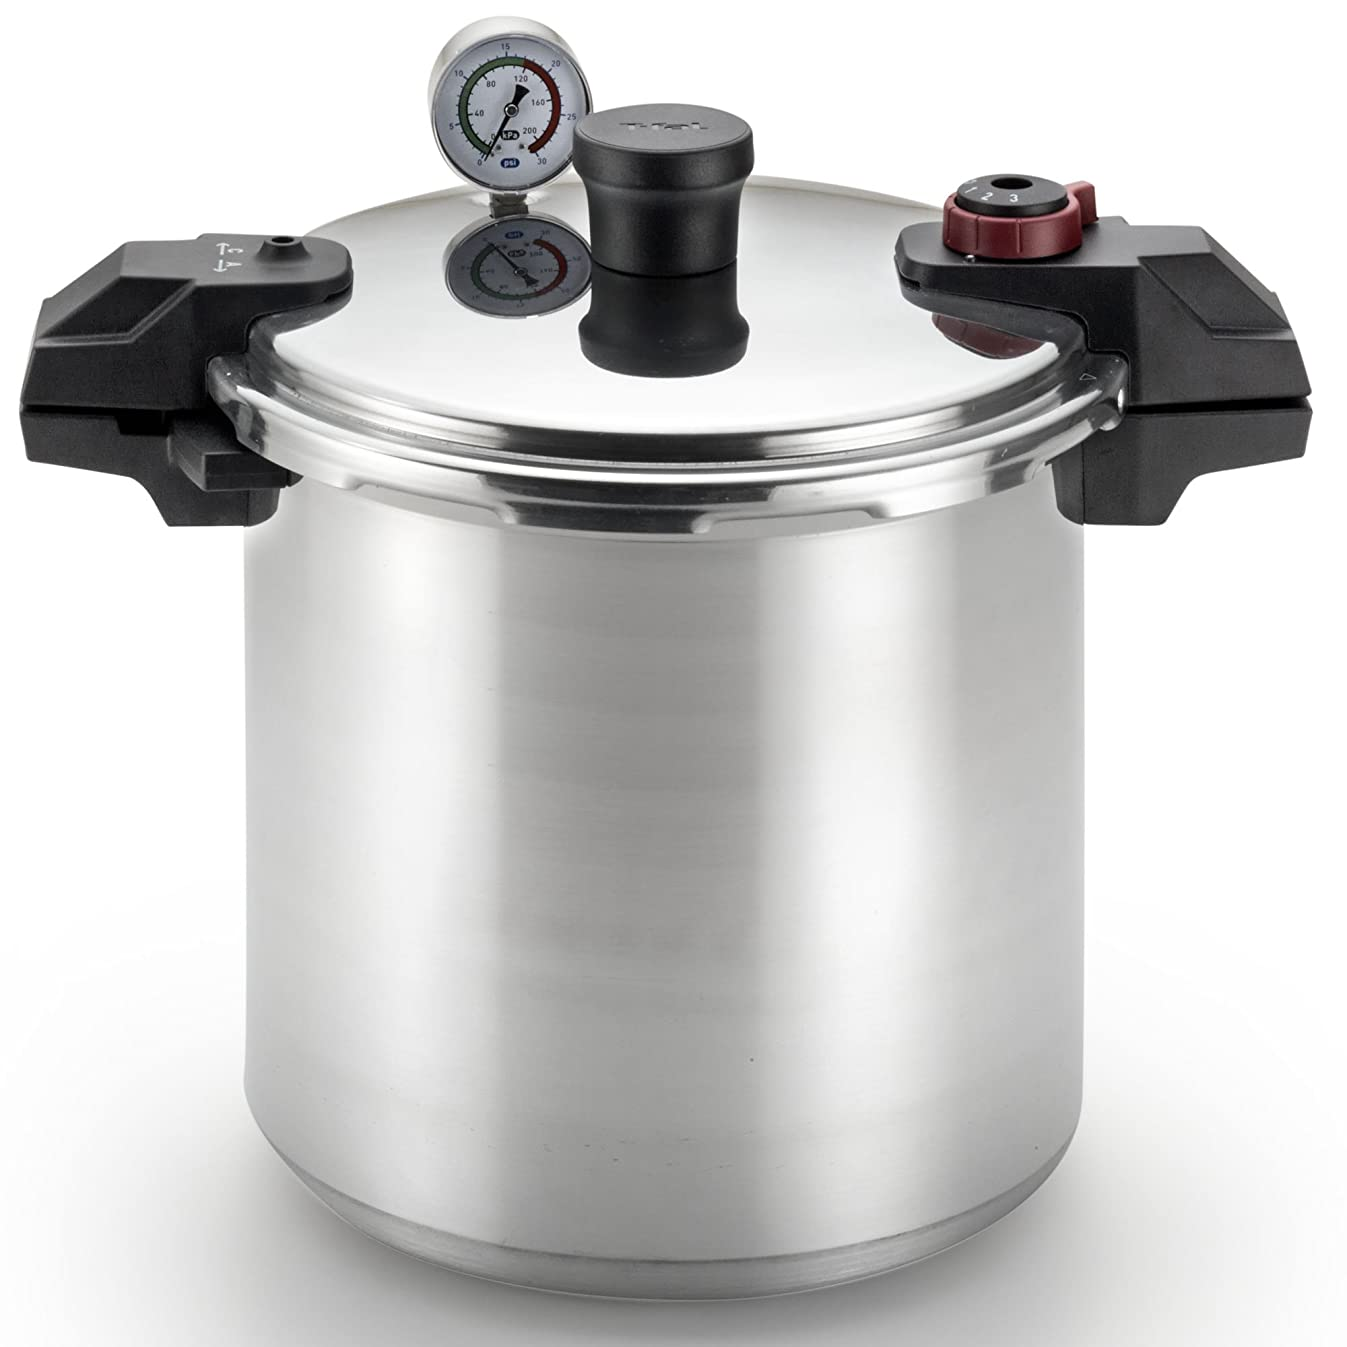 T-fal Pressure Cooker, Pressure Canner with Pressure Control, 3 PSI Settings, 22 Quart, Silver